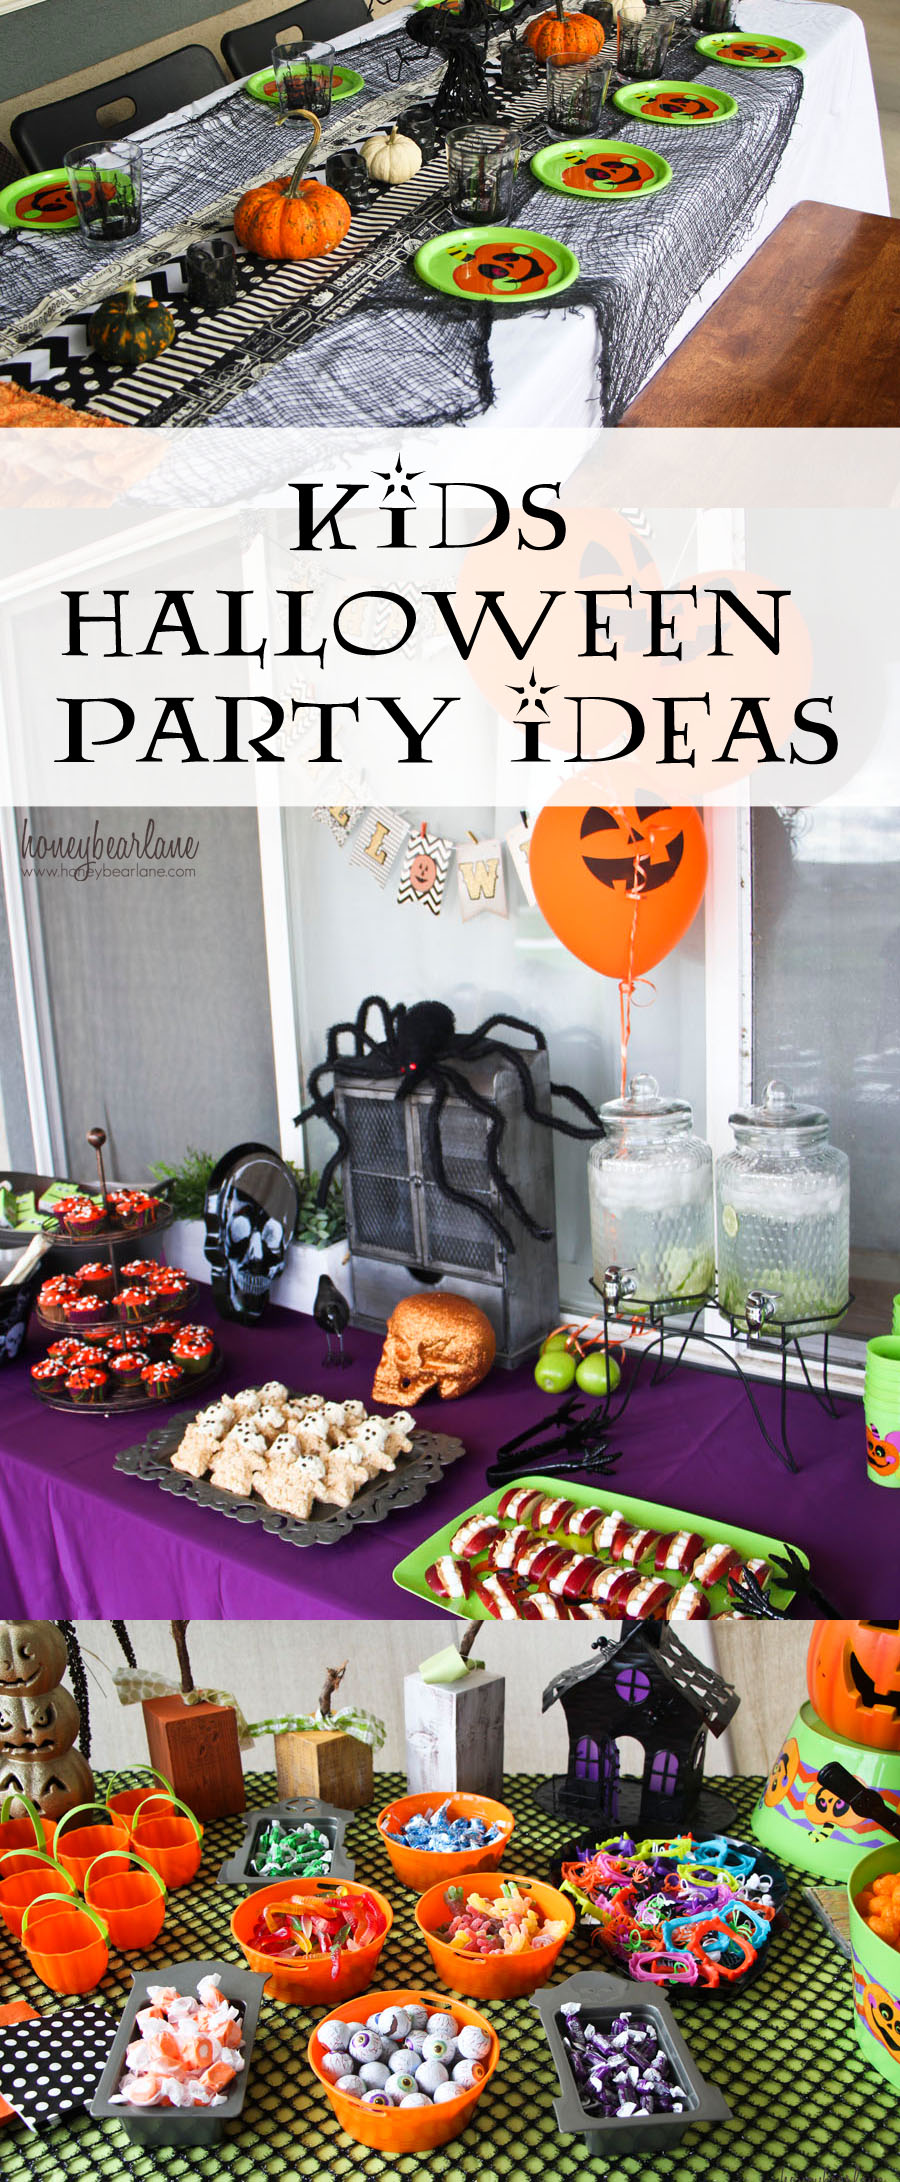 13 Easy Halloween Crafts for Toddlers. Even tiny hands can make these adorable Halloween decorations--with supervision from Mom or Dad, of course.